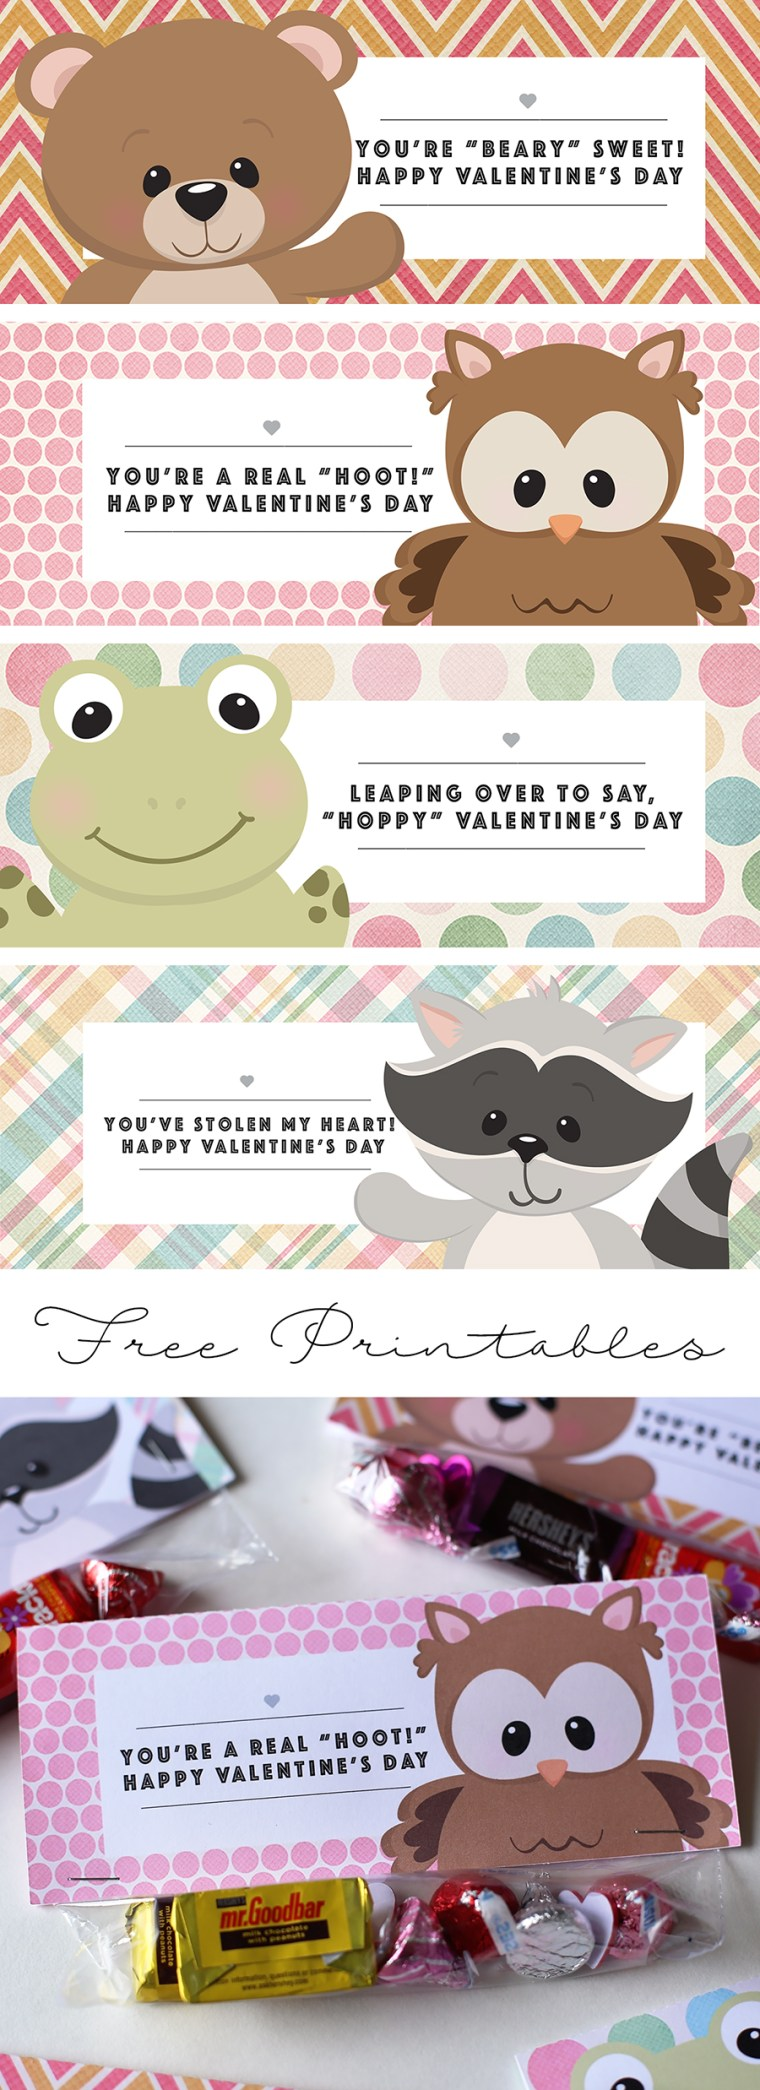 Woodland Animal Friends Valentine's Day Treat Bag Topper | Free Printable